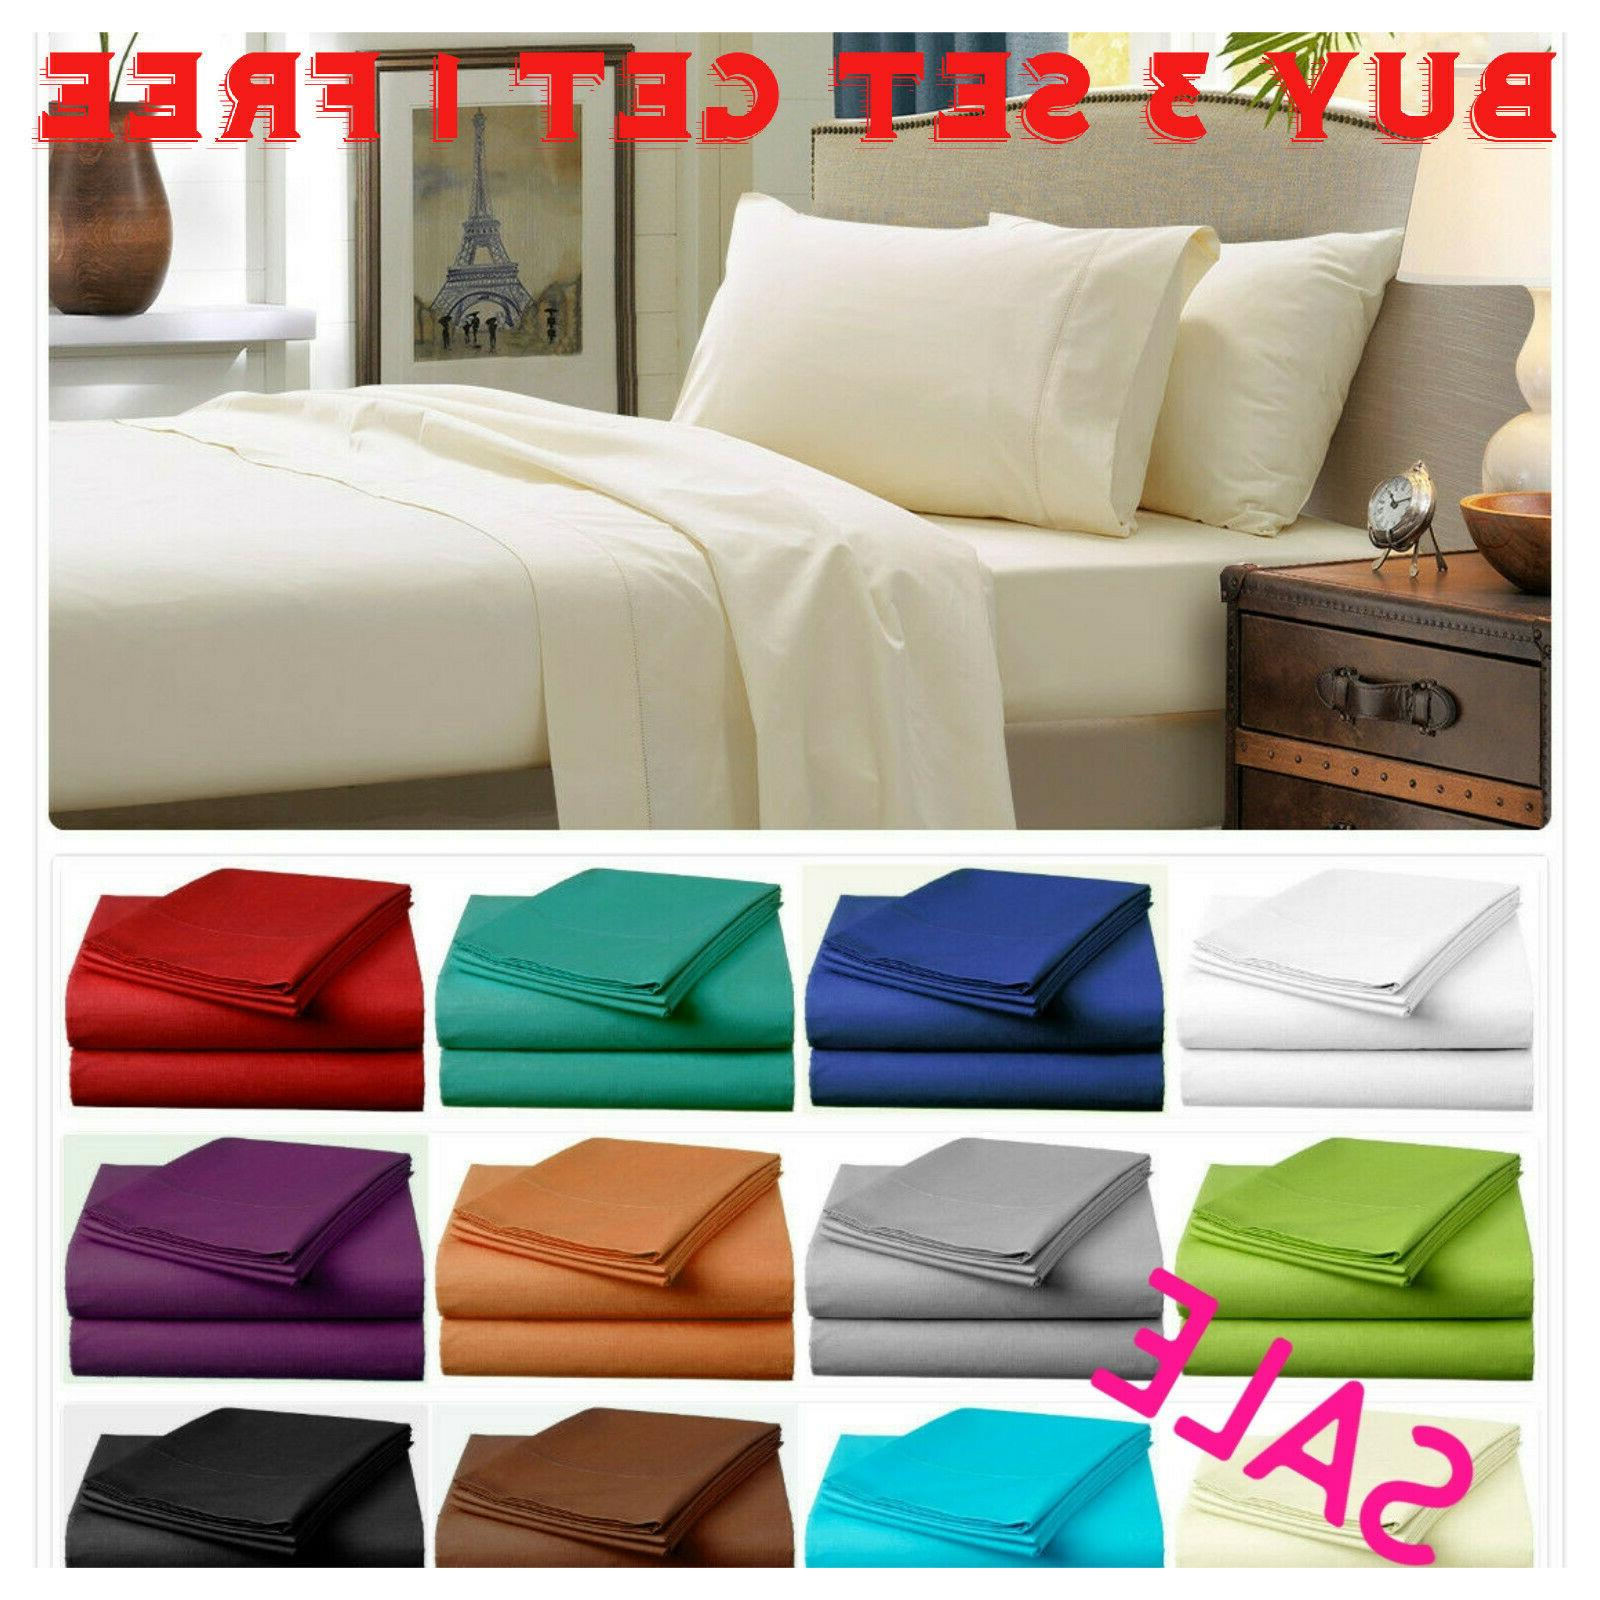 fitted bed sets flat sheets 1900 series